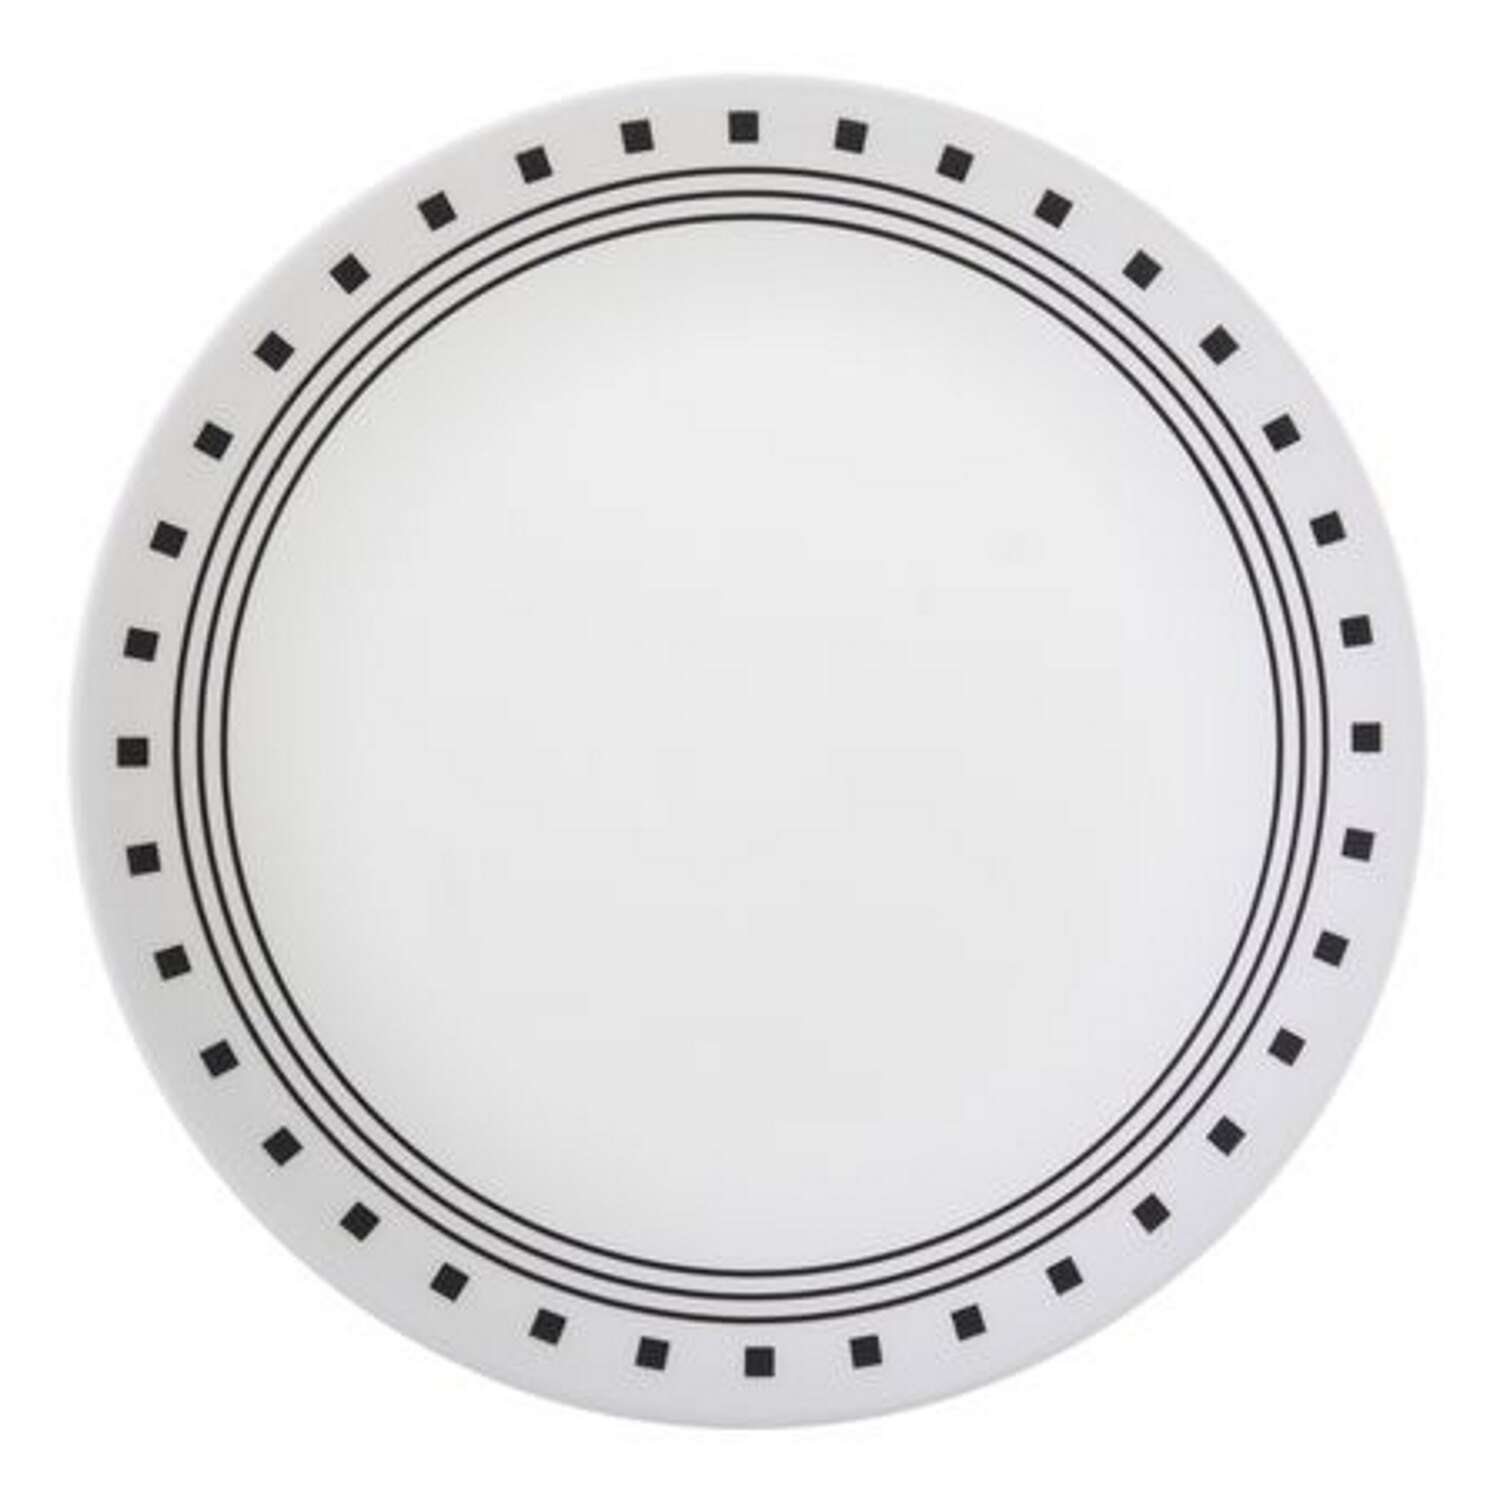 Corelle  Livingware  Black/White  Glass  City Block  Luncheon Plate  8-1/2 in. Dia. 1 pk